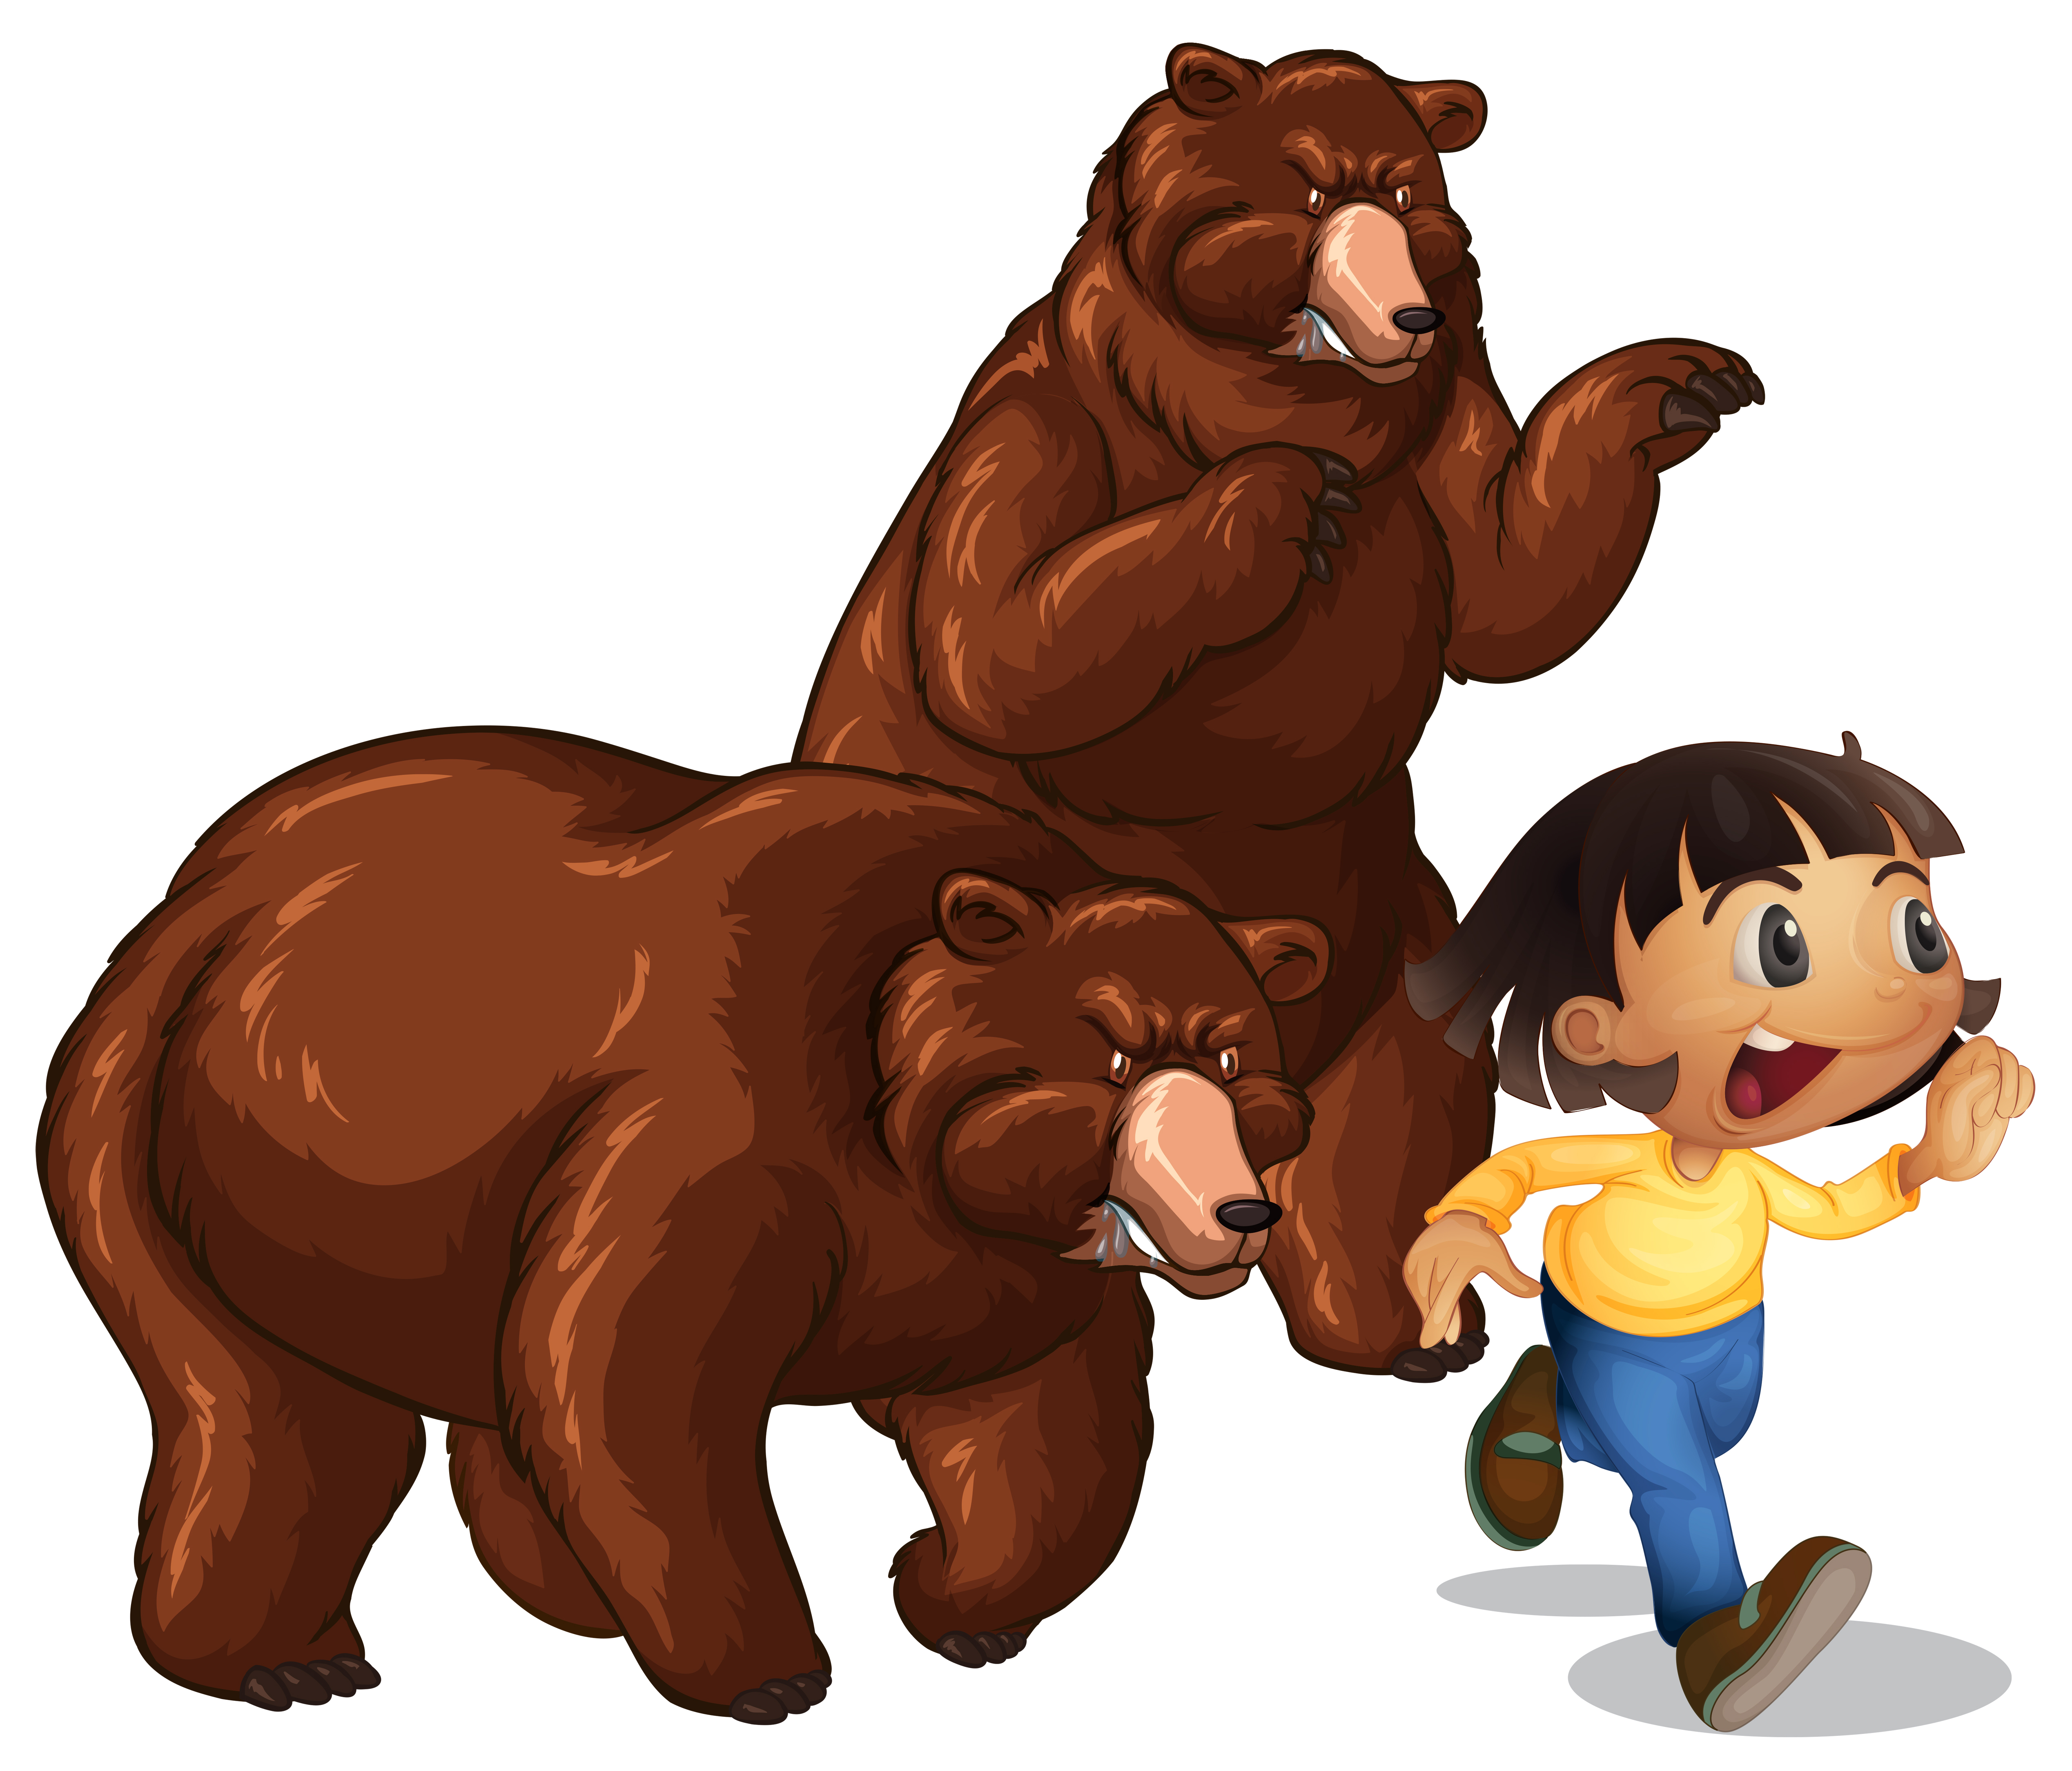 Girl running away from grizzly bears - Download Free ...